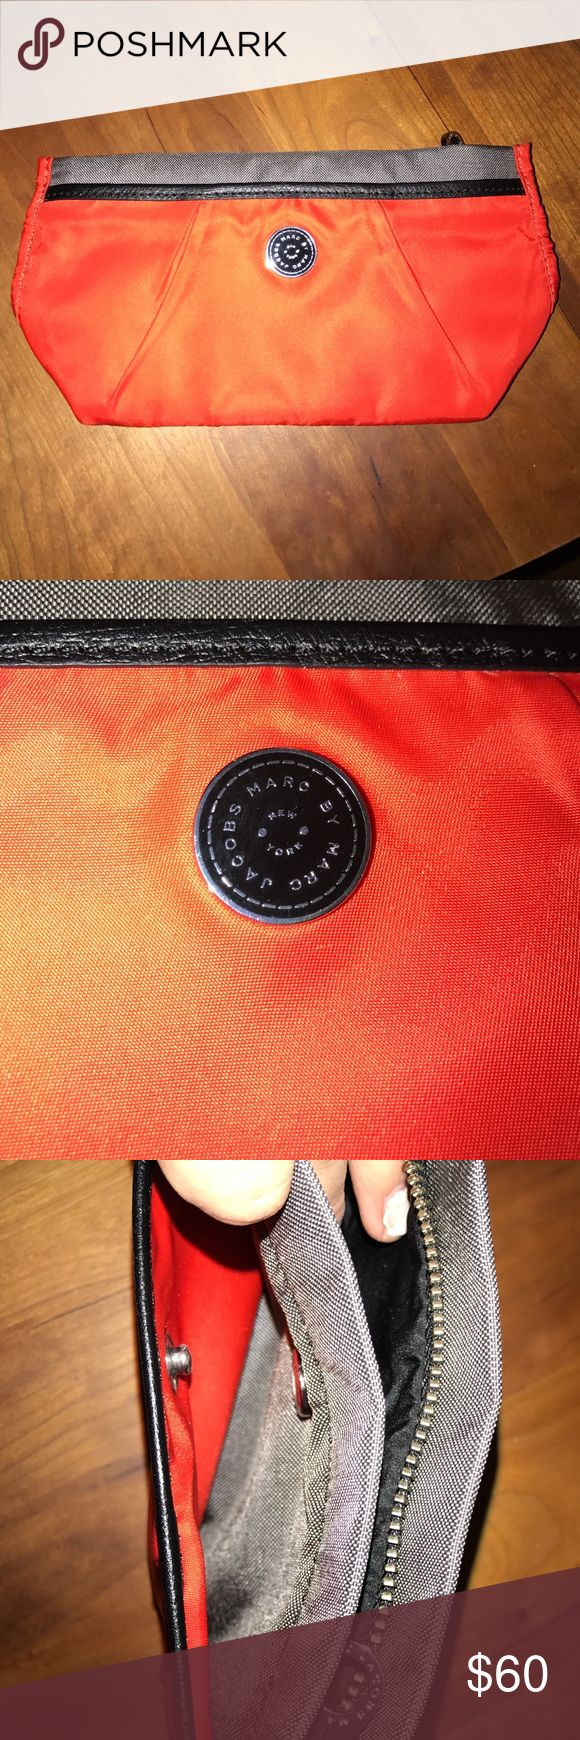 Marc Jacobs Cosmetic pouch Brand new without tags. Never used. Perfect for make up, travel bag. Has two pockets. Marc by Marc Jacobs Bags Cosmetic Bags & Cases